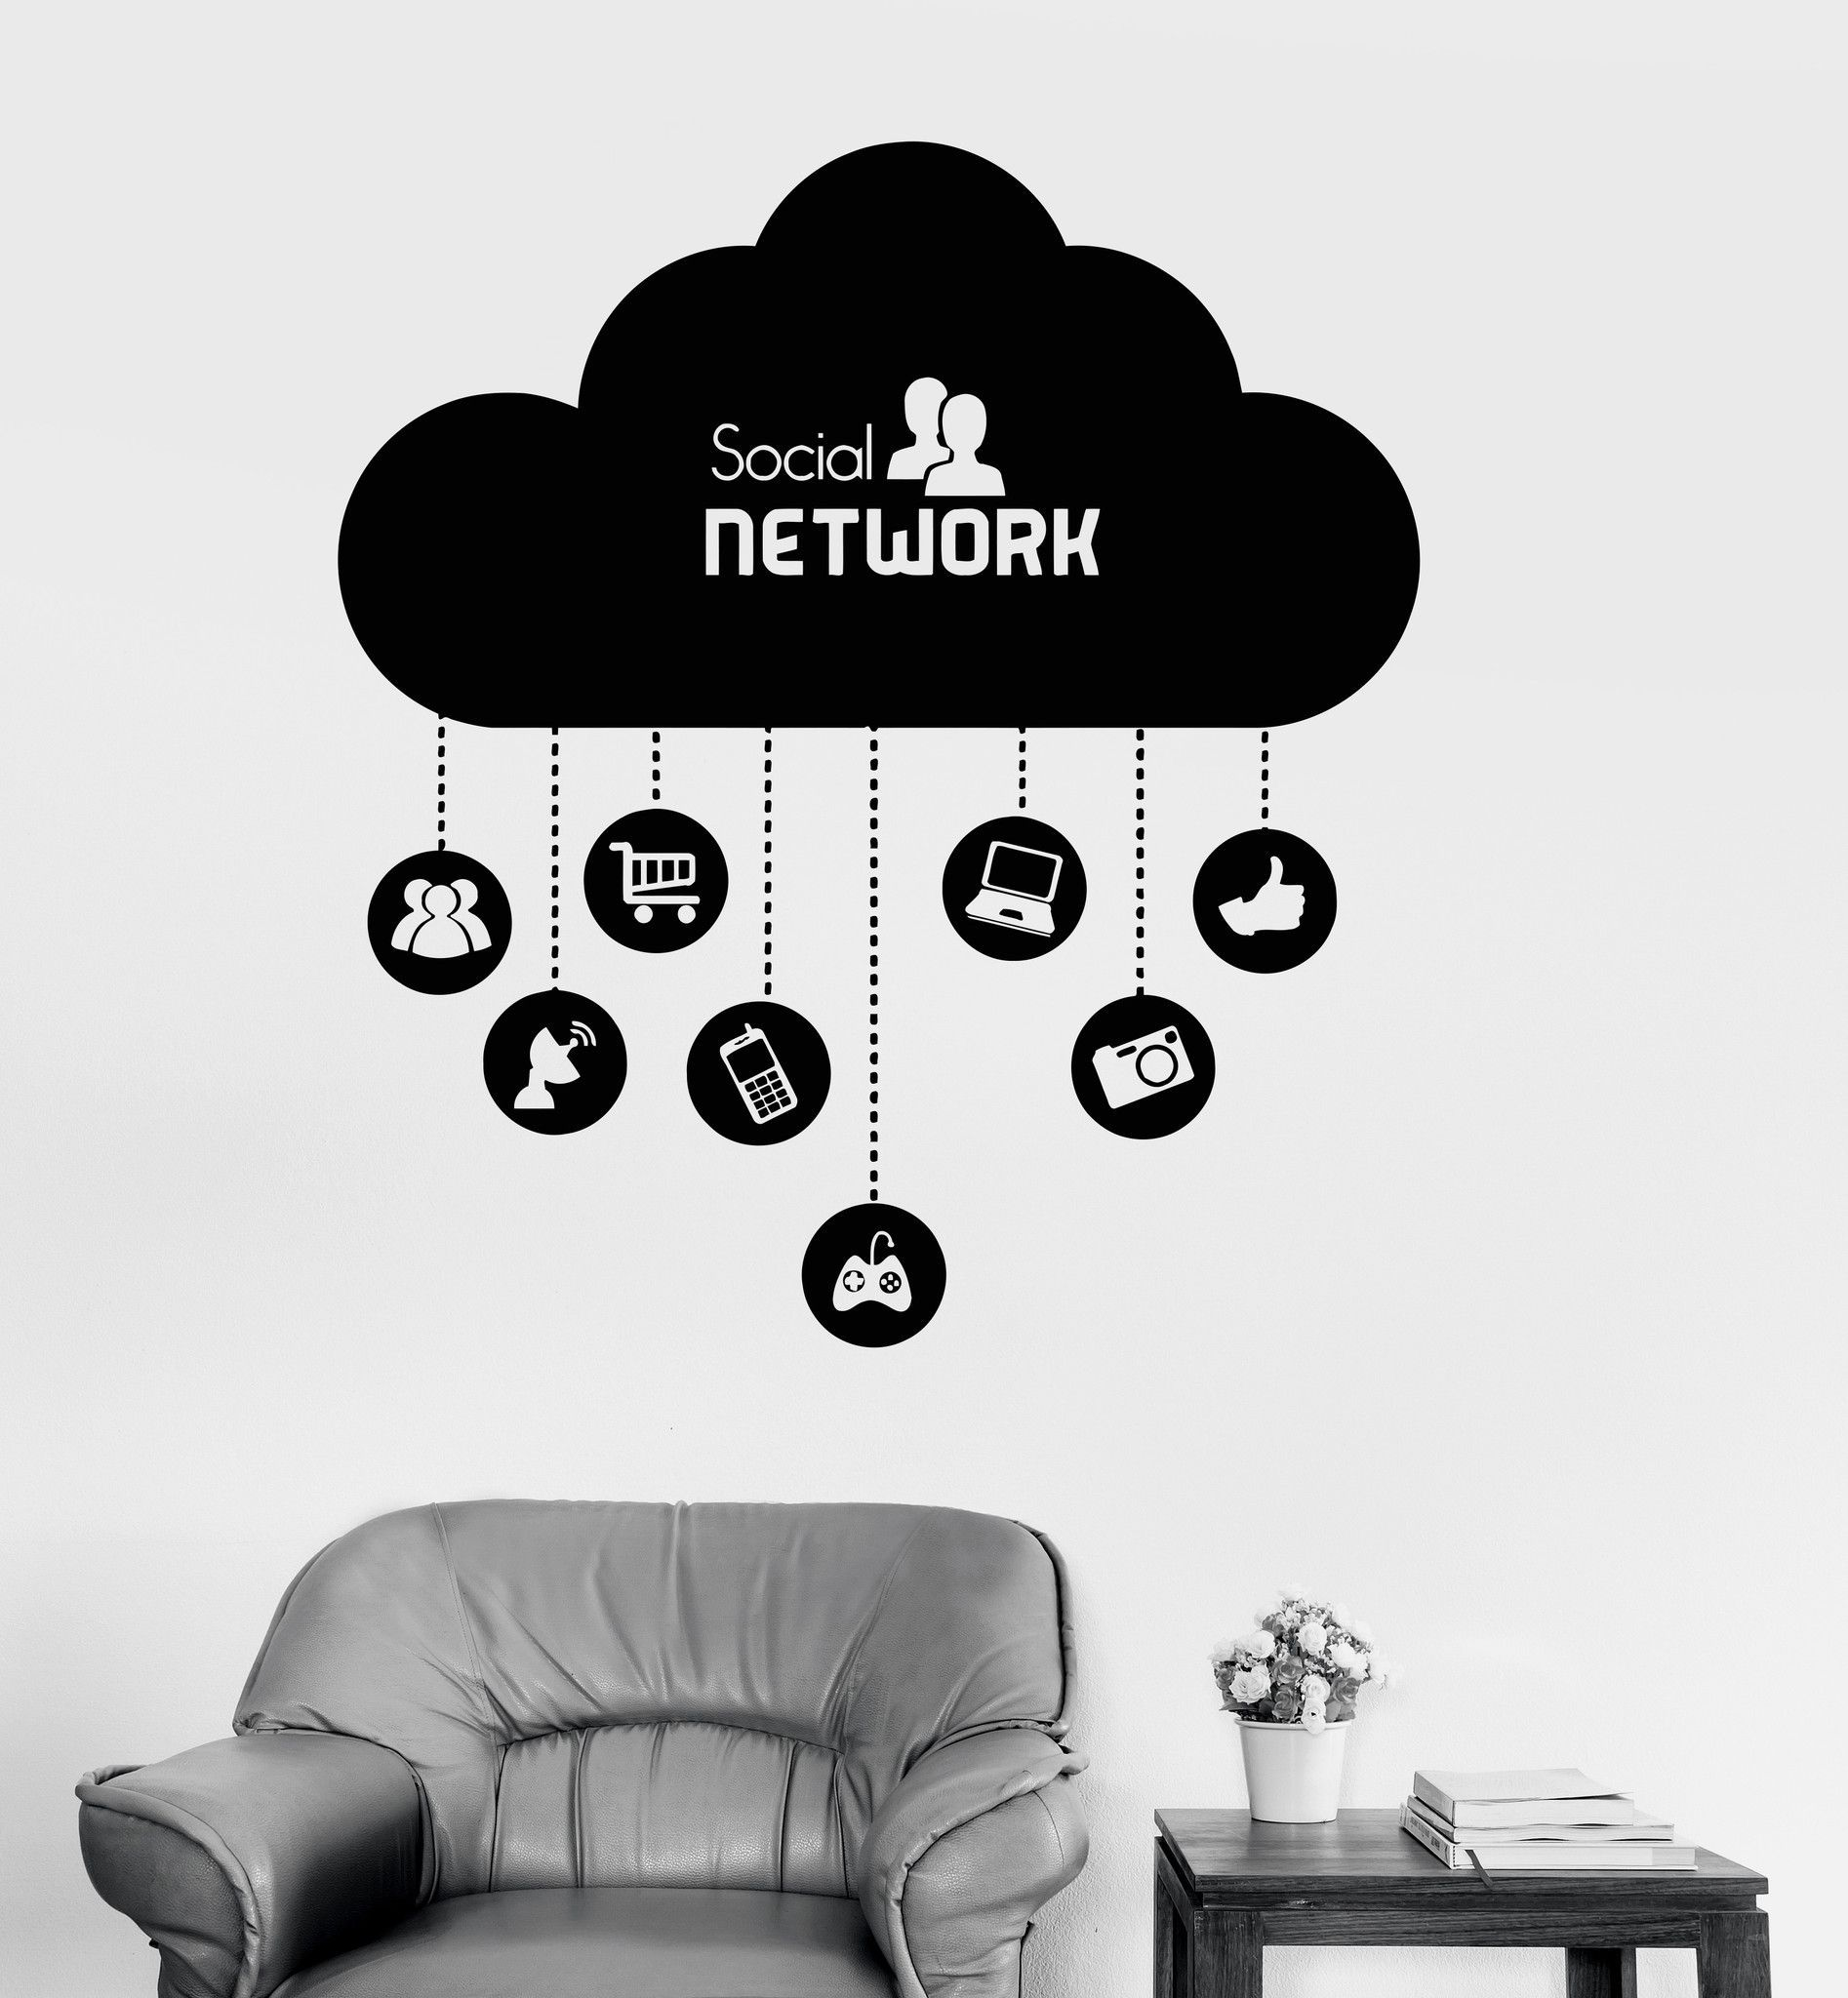 Vinyl wall decal cloud social network computer technology it vinyl wall decal cloud social network computer technology it stickers ig4073 amipublicfo Gallery